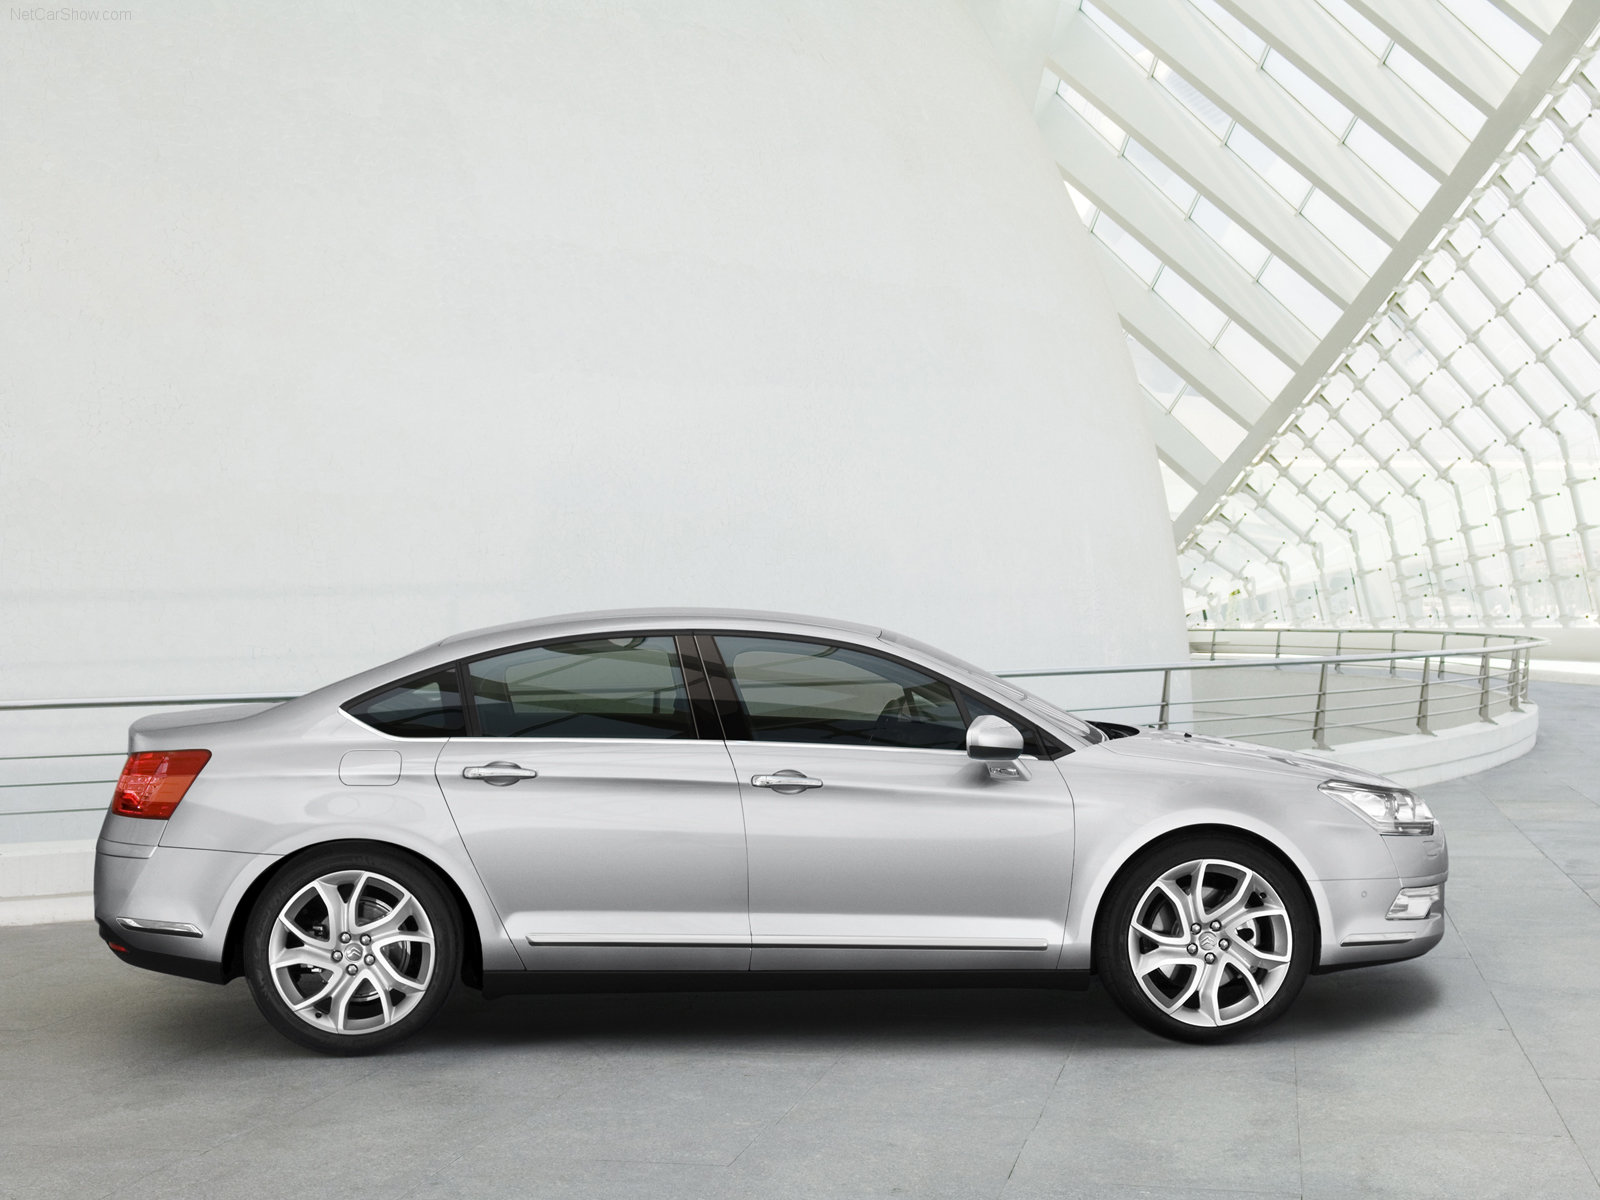 citroen c5 wallpaper